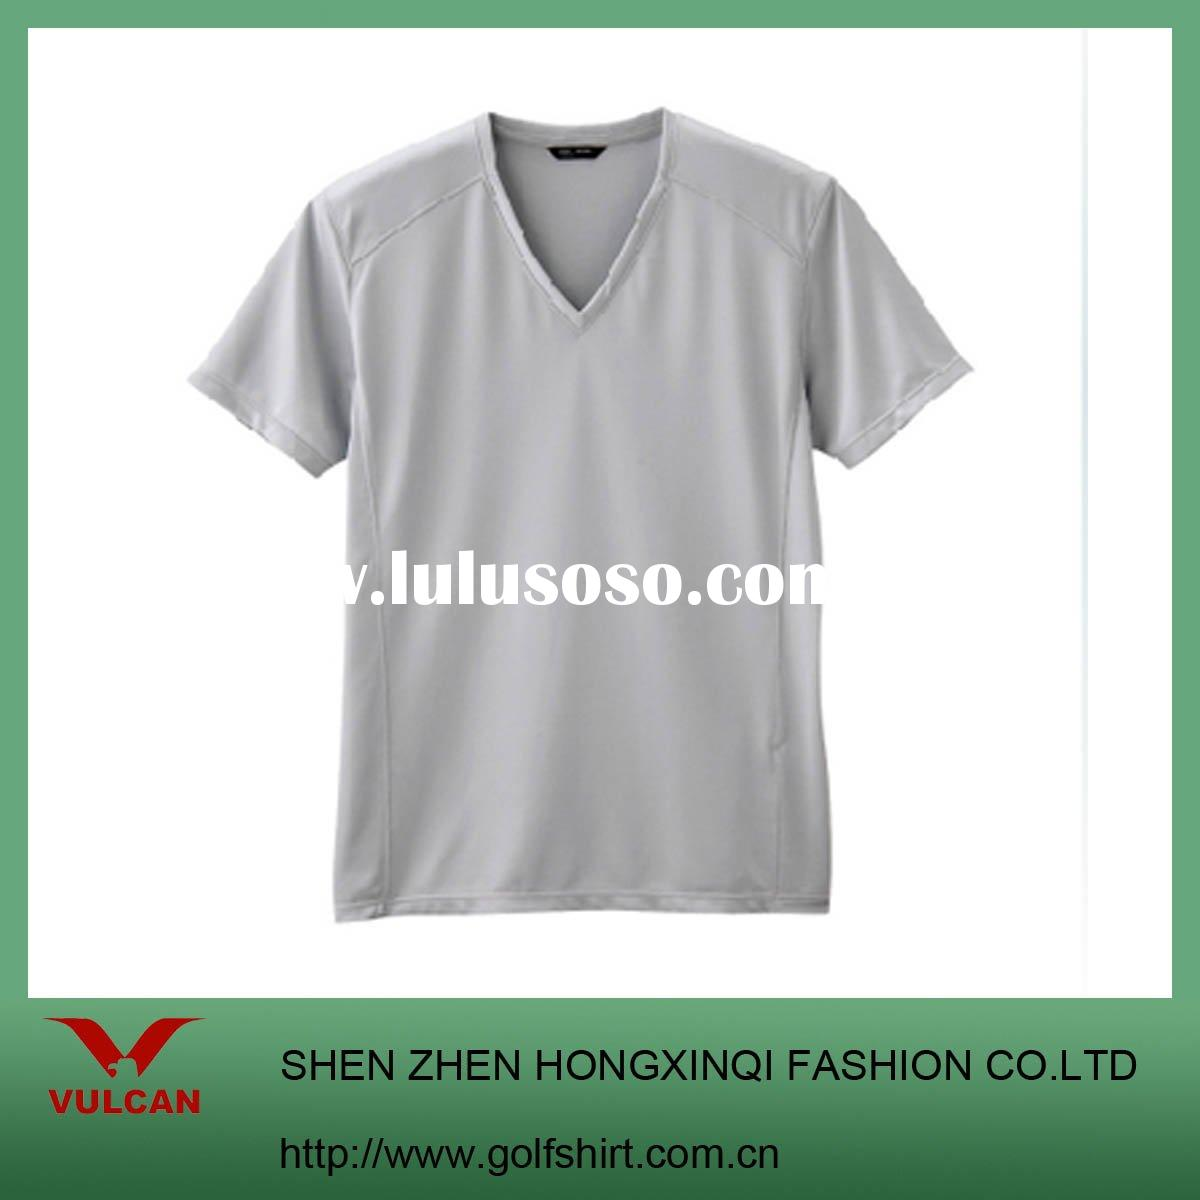 Men's Plain Short Sleeve T Shirts, V-neck. Accept Your Own Designs